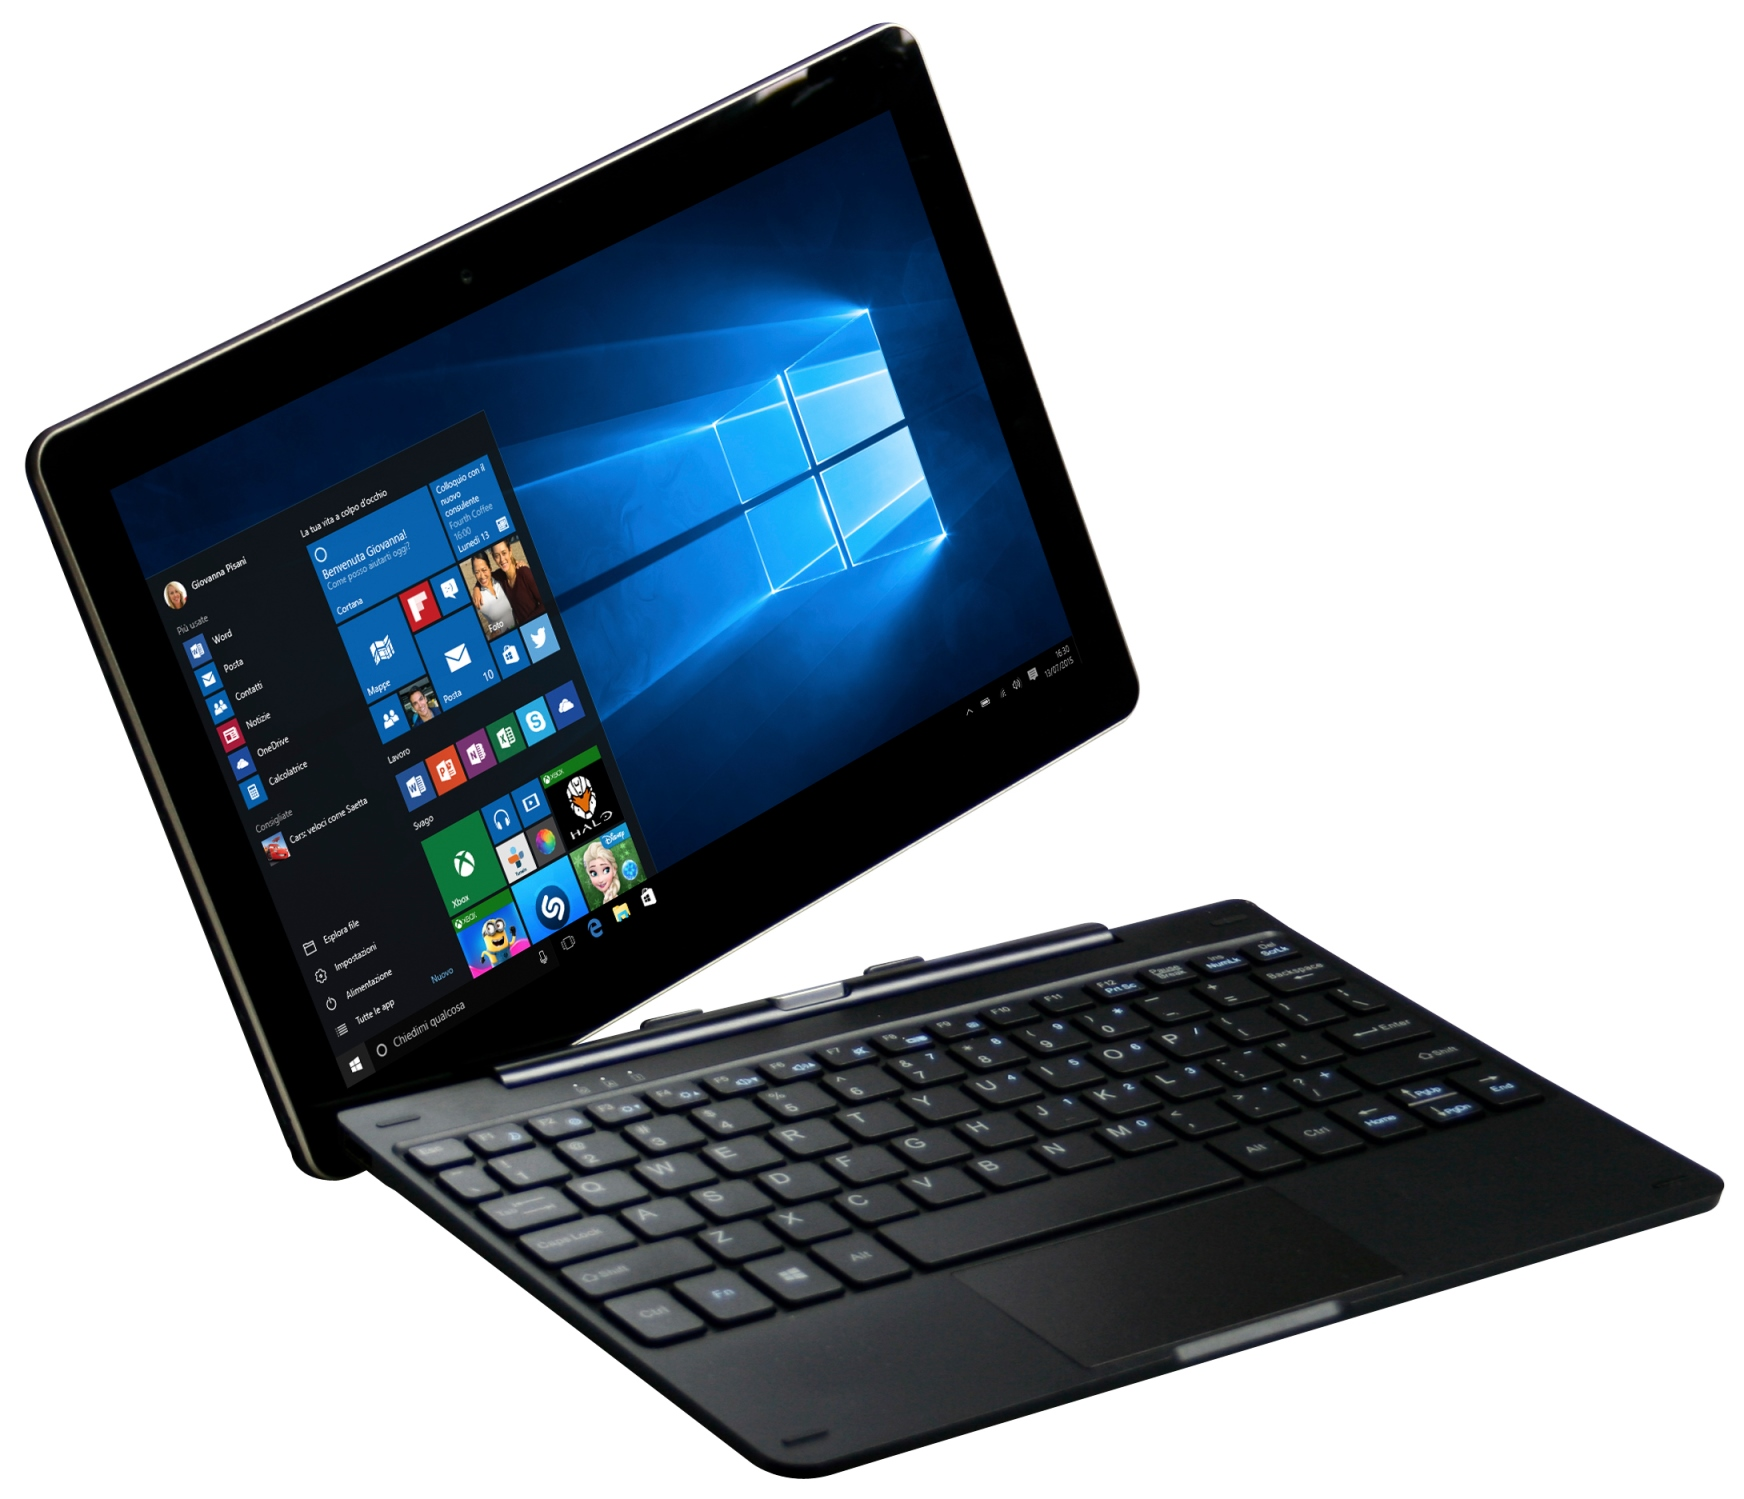 Mediacom WinPad 10.1 X201; il notebook-tablet 2 in 1 con Windows 10